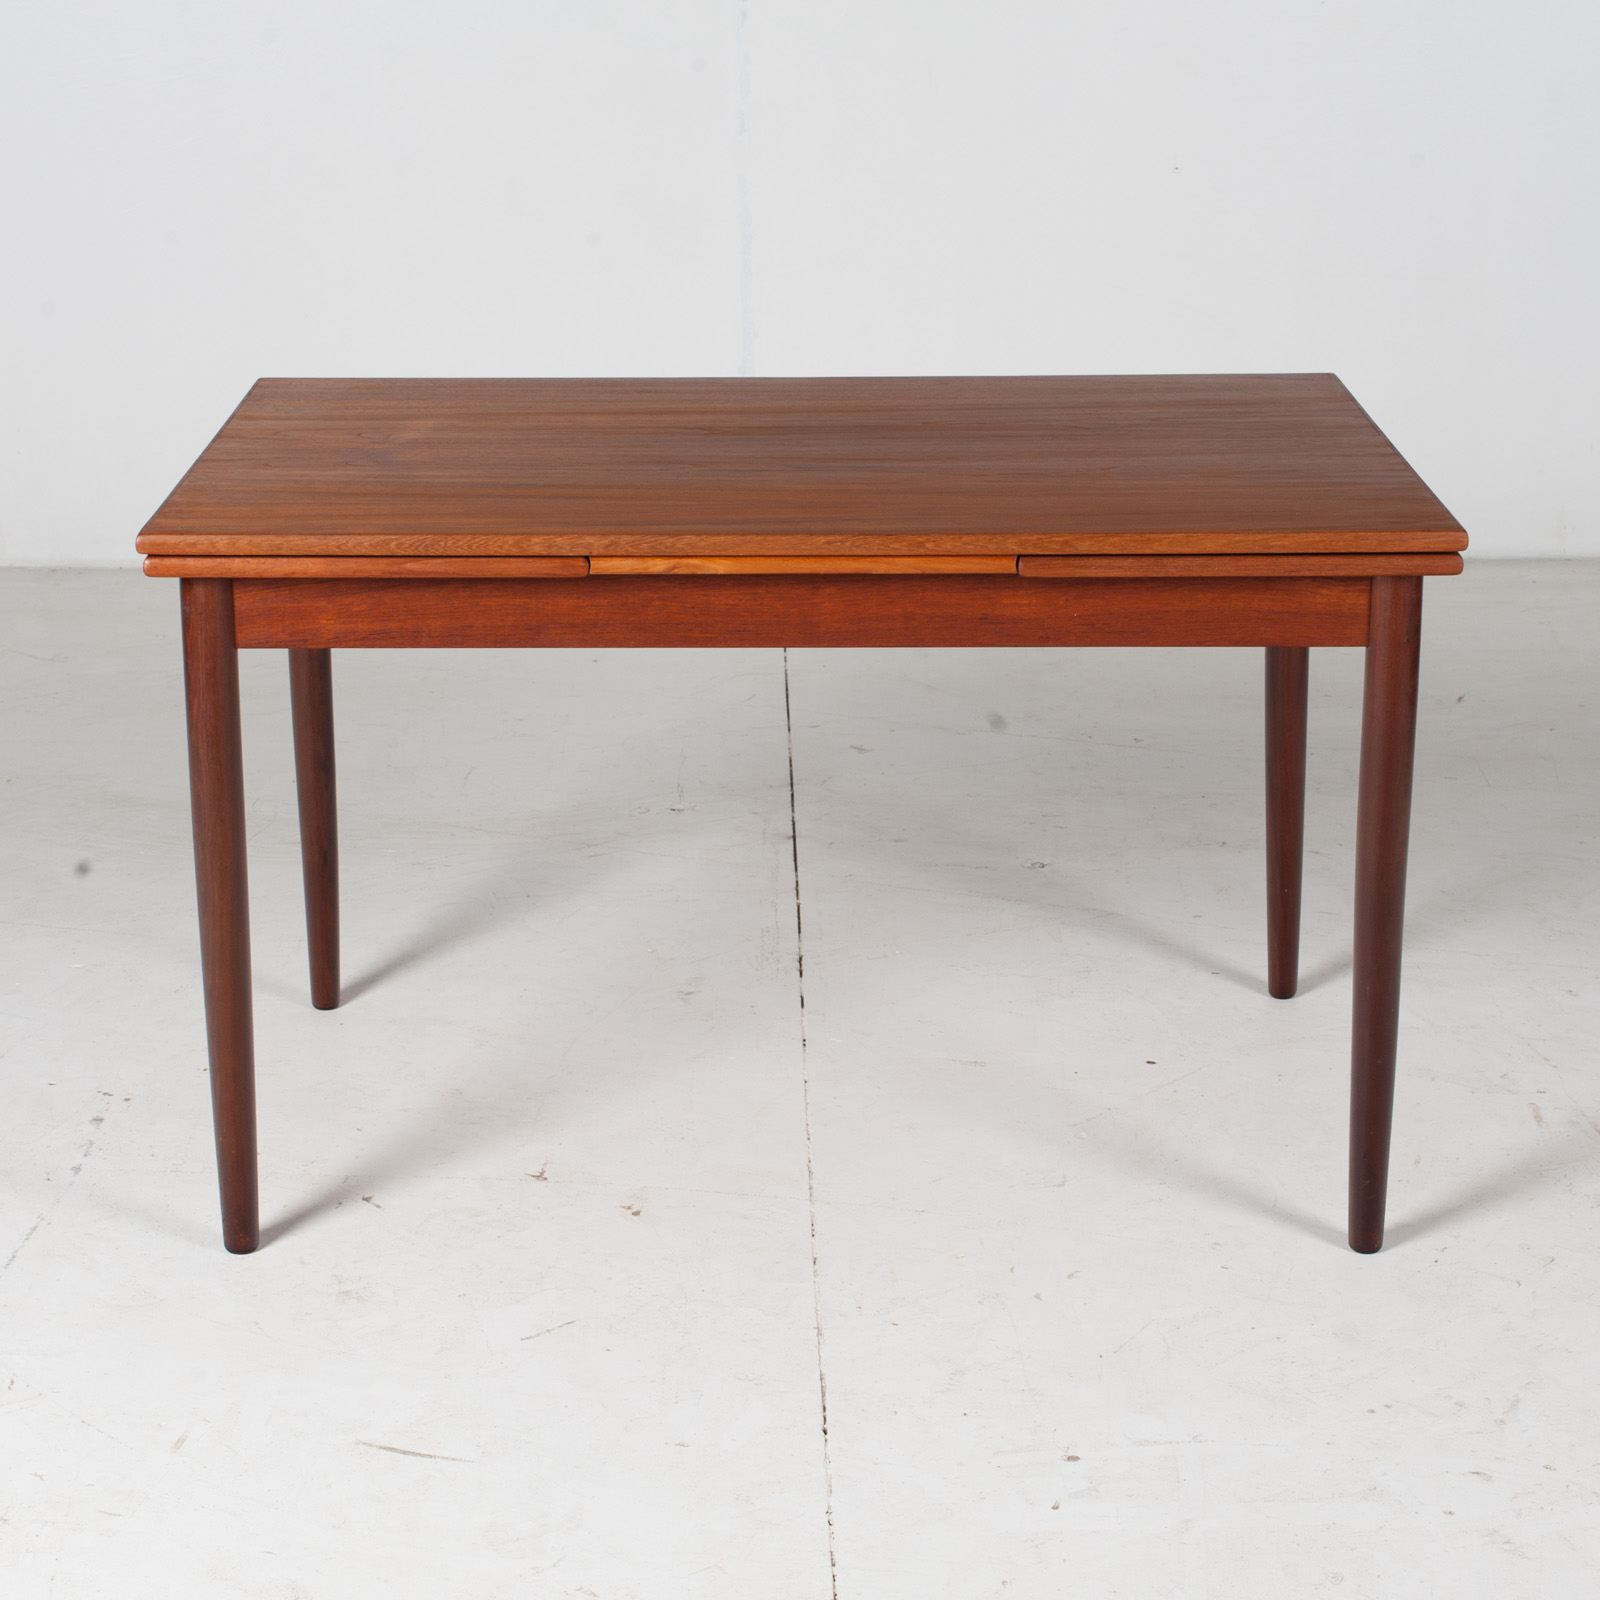 Extendable Rectangular Dining Table In Teak With Solid Edge 1960s Denmark Modern Times